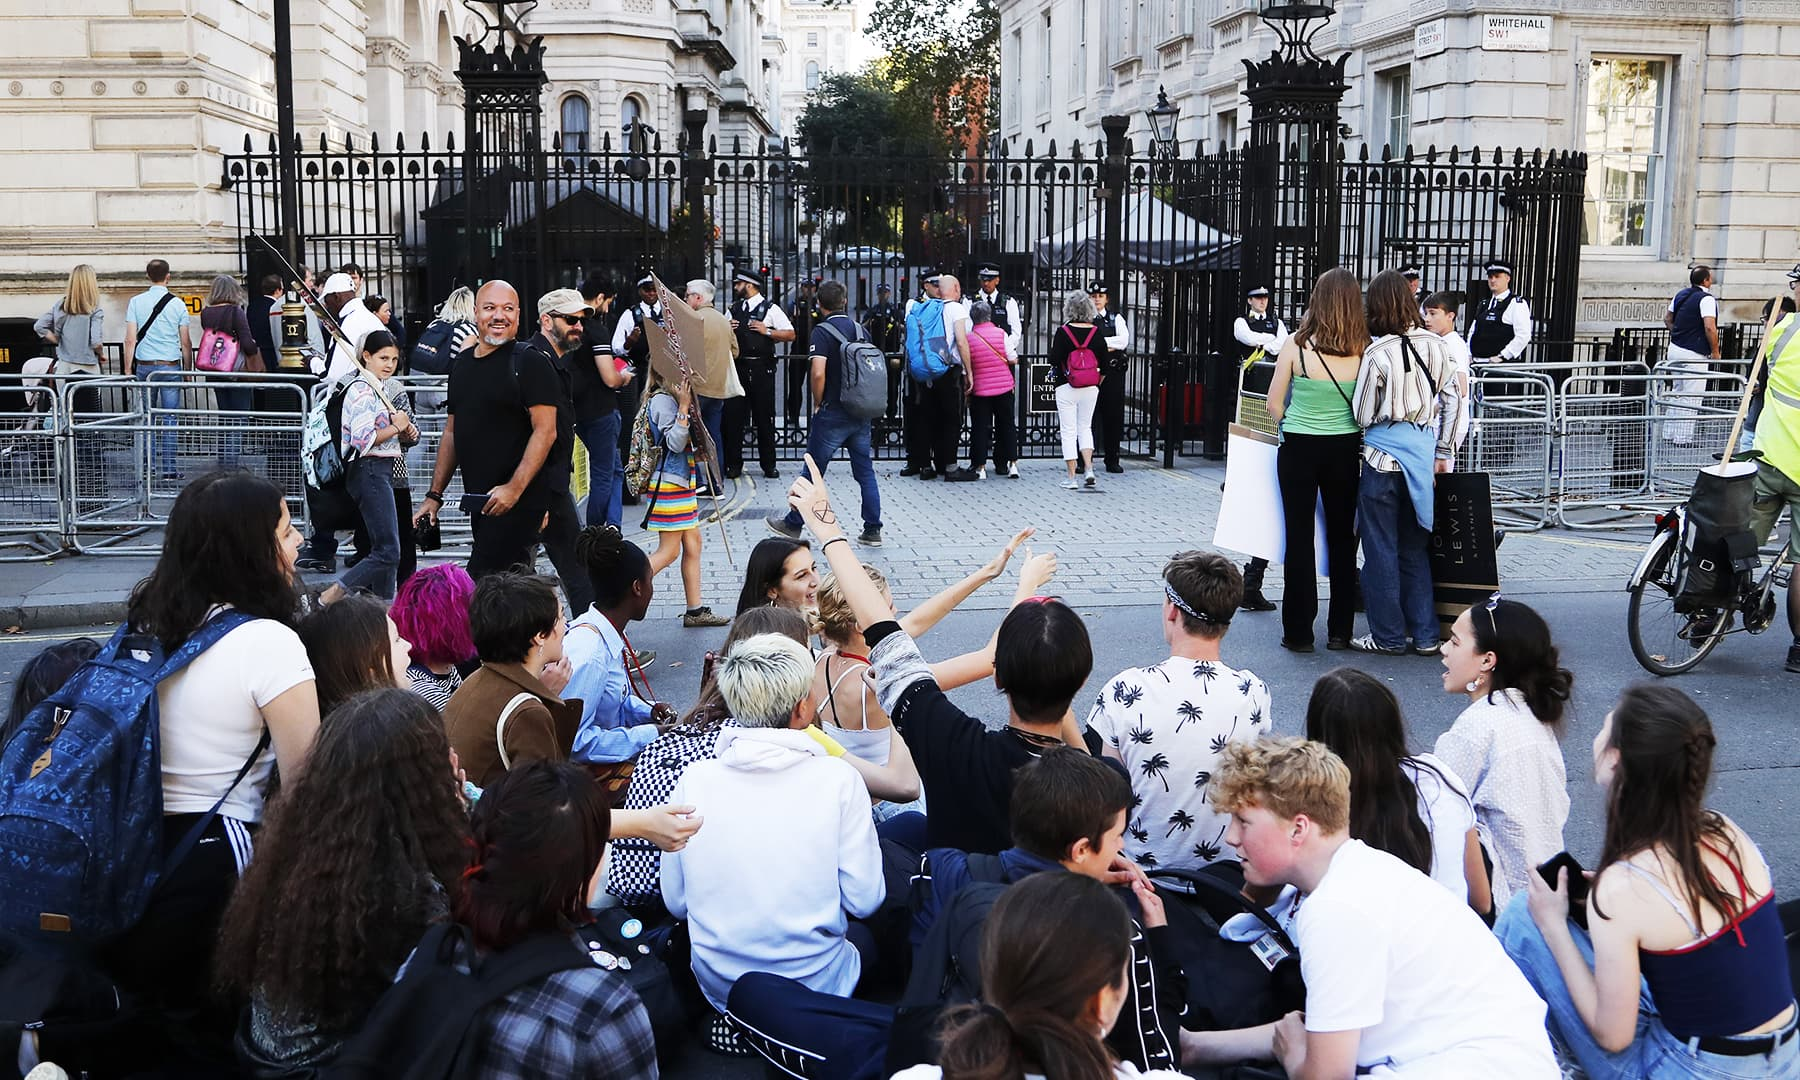 Climate protesters demonstrate in front of the gate to Downing Street in London.— AP